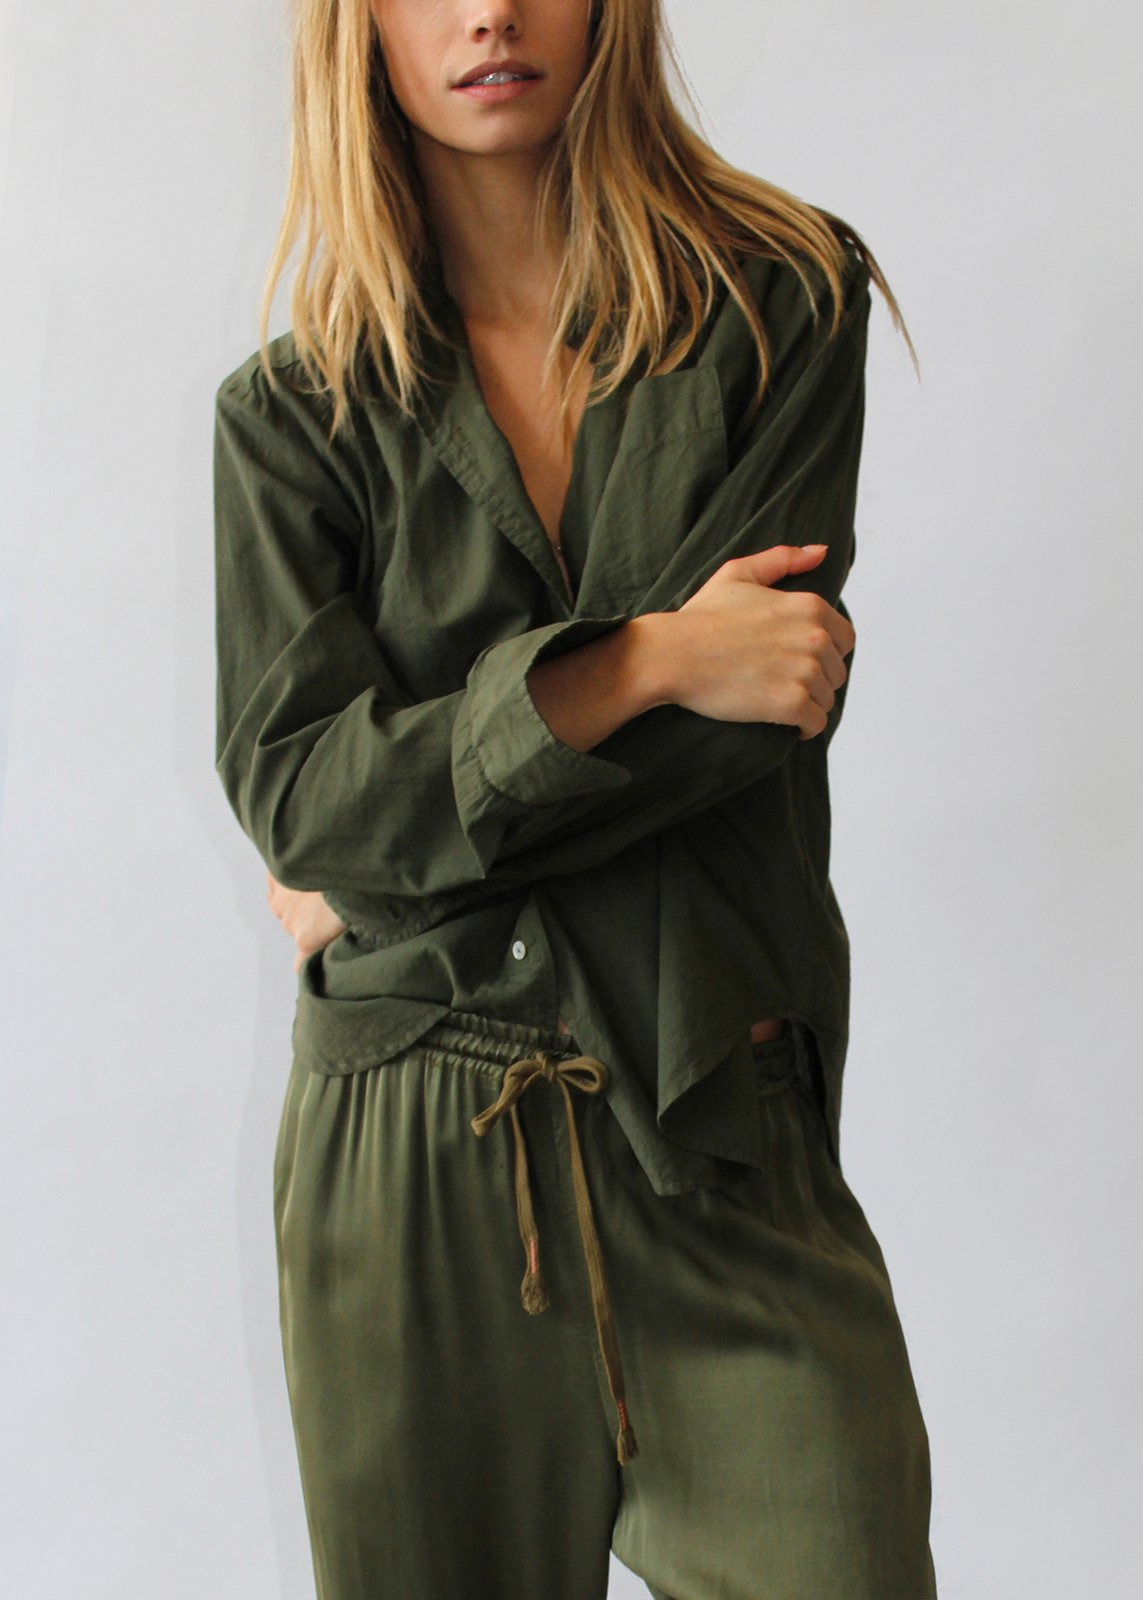 The Ace Shirt in Dark Olive - Cali Dreaming